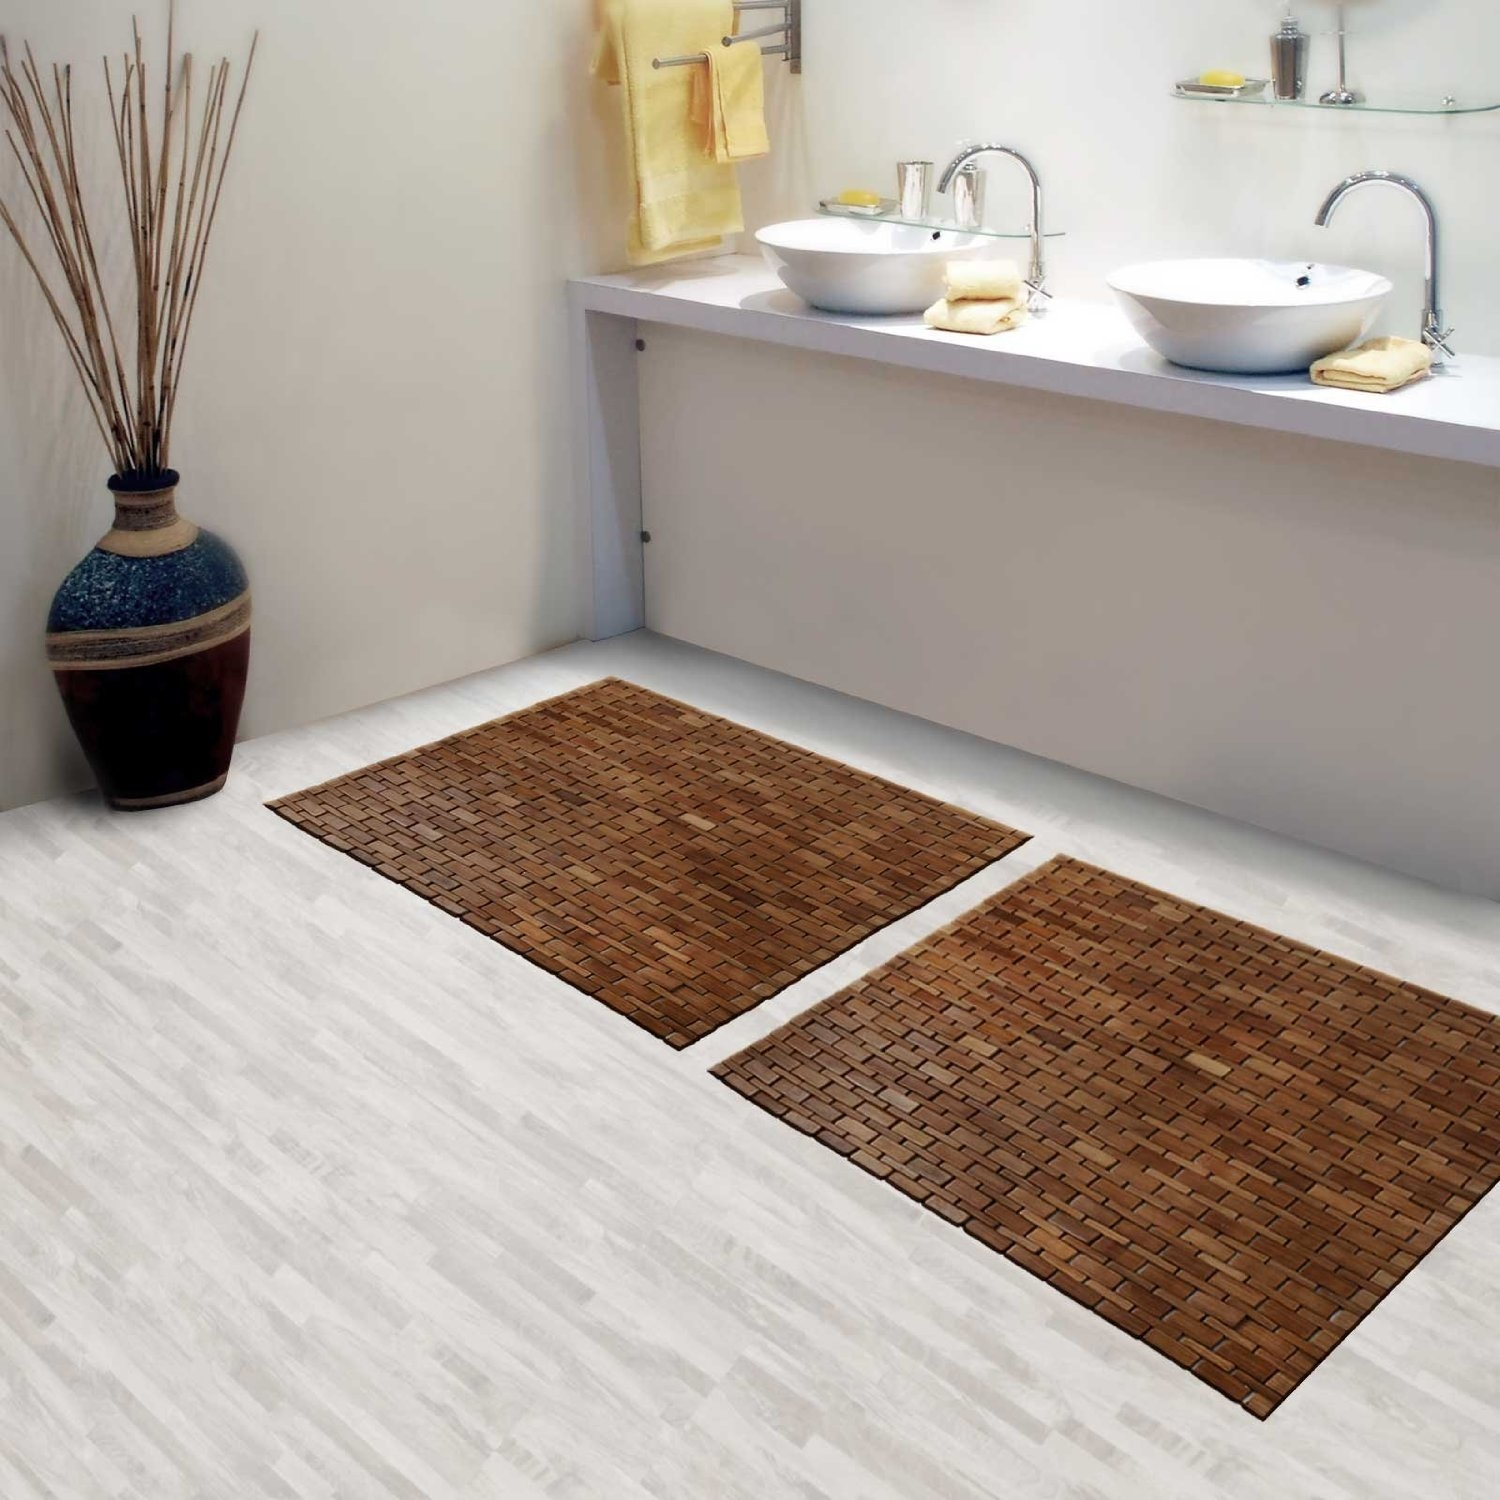 Japanese Wooden Bath Mats